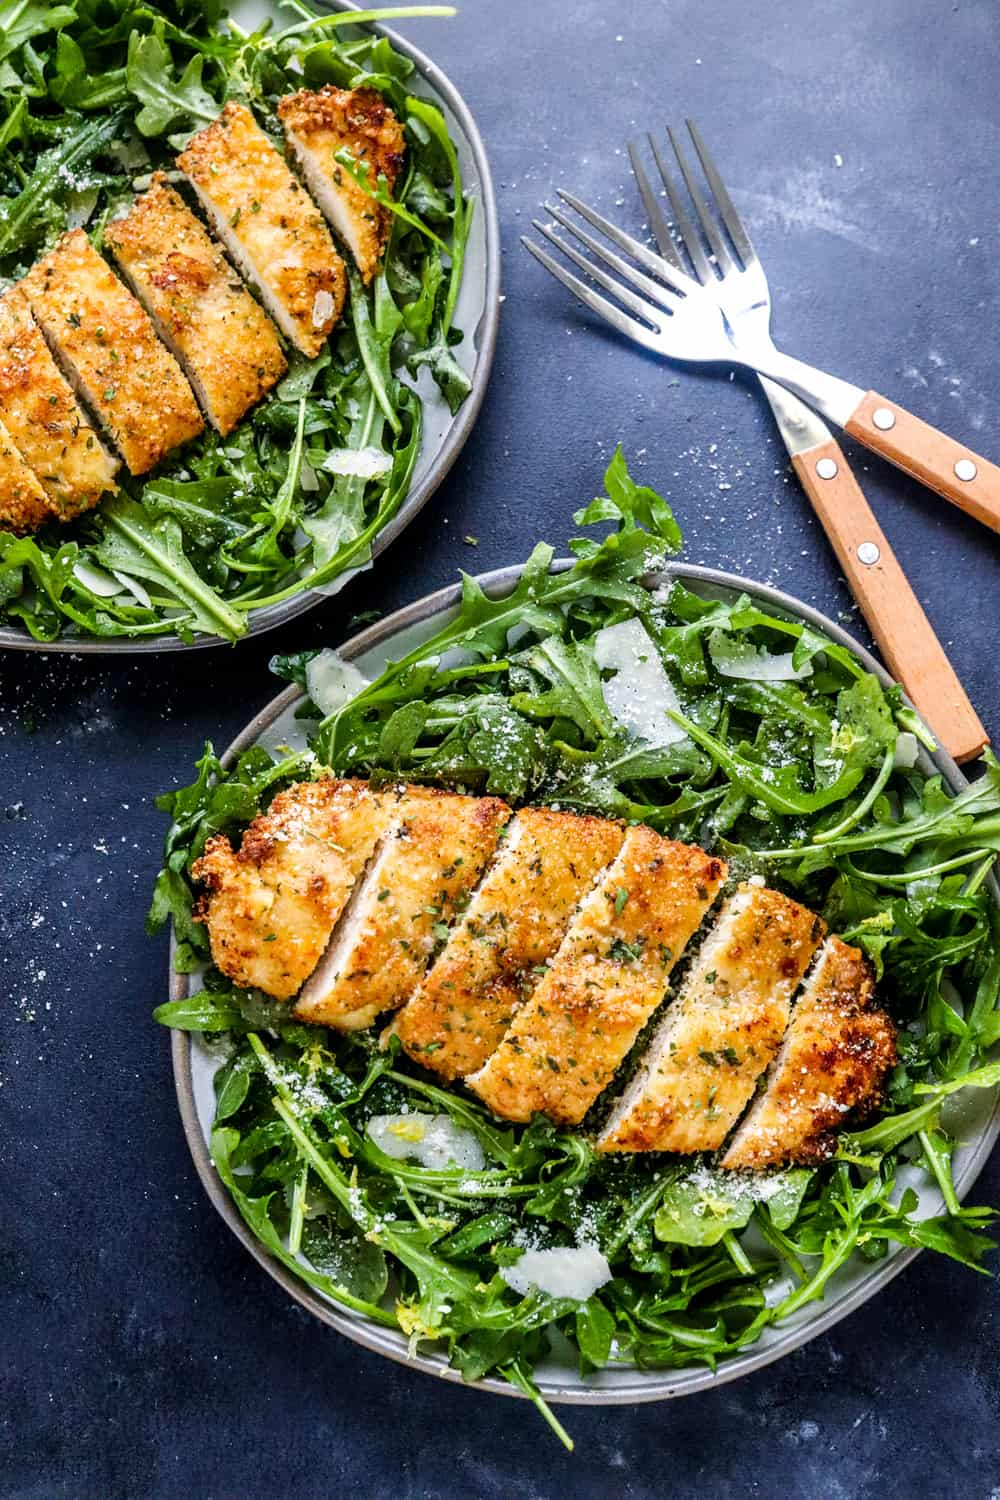 two grey plates filled with arugula salad topped with crispy breaded chicken breast